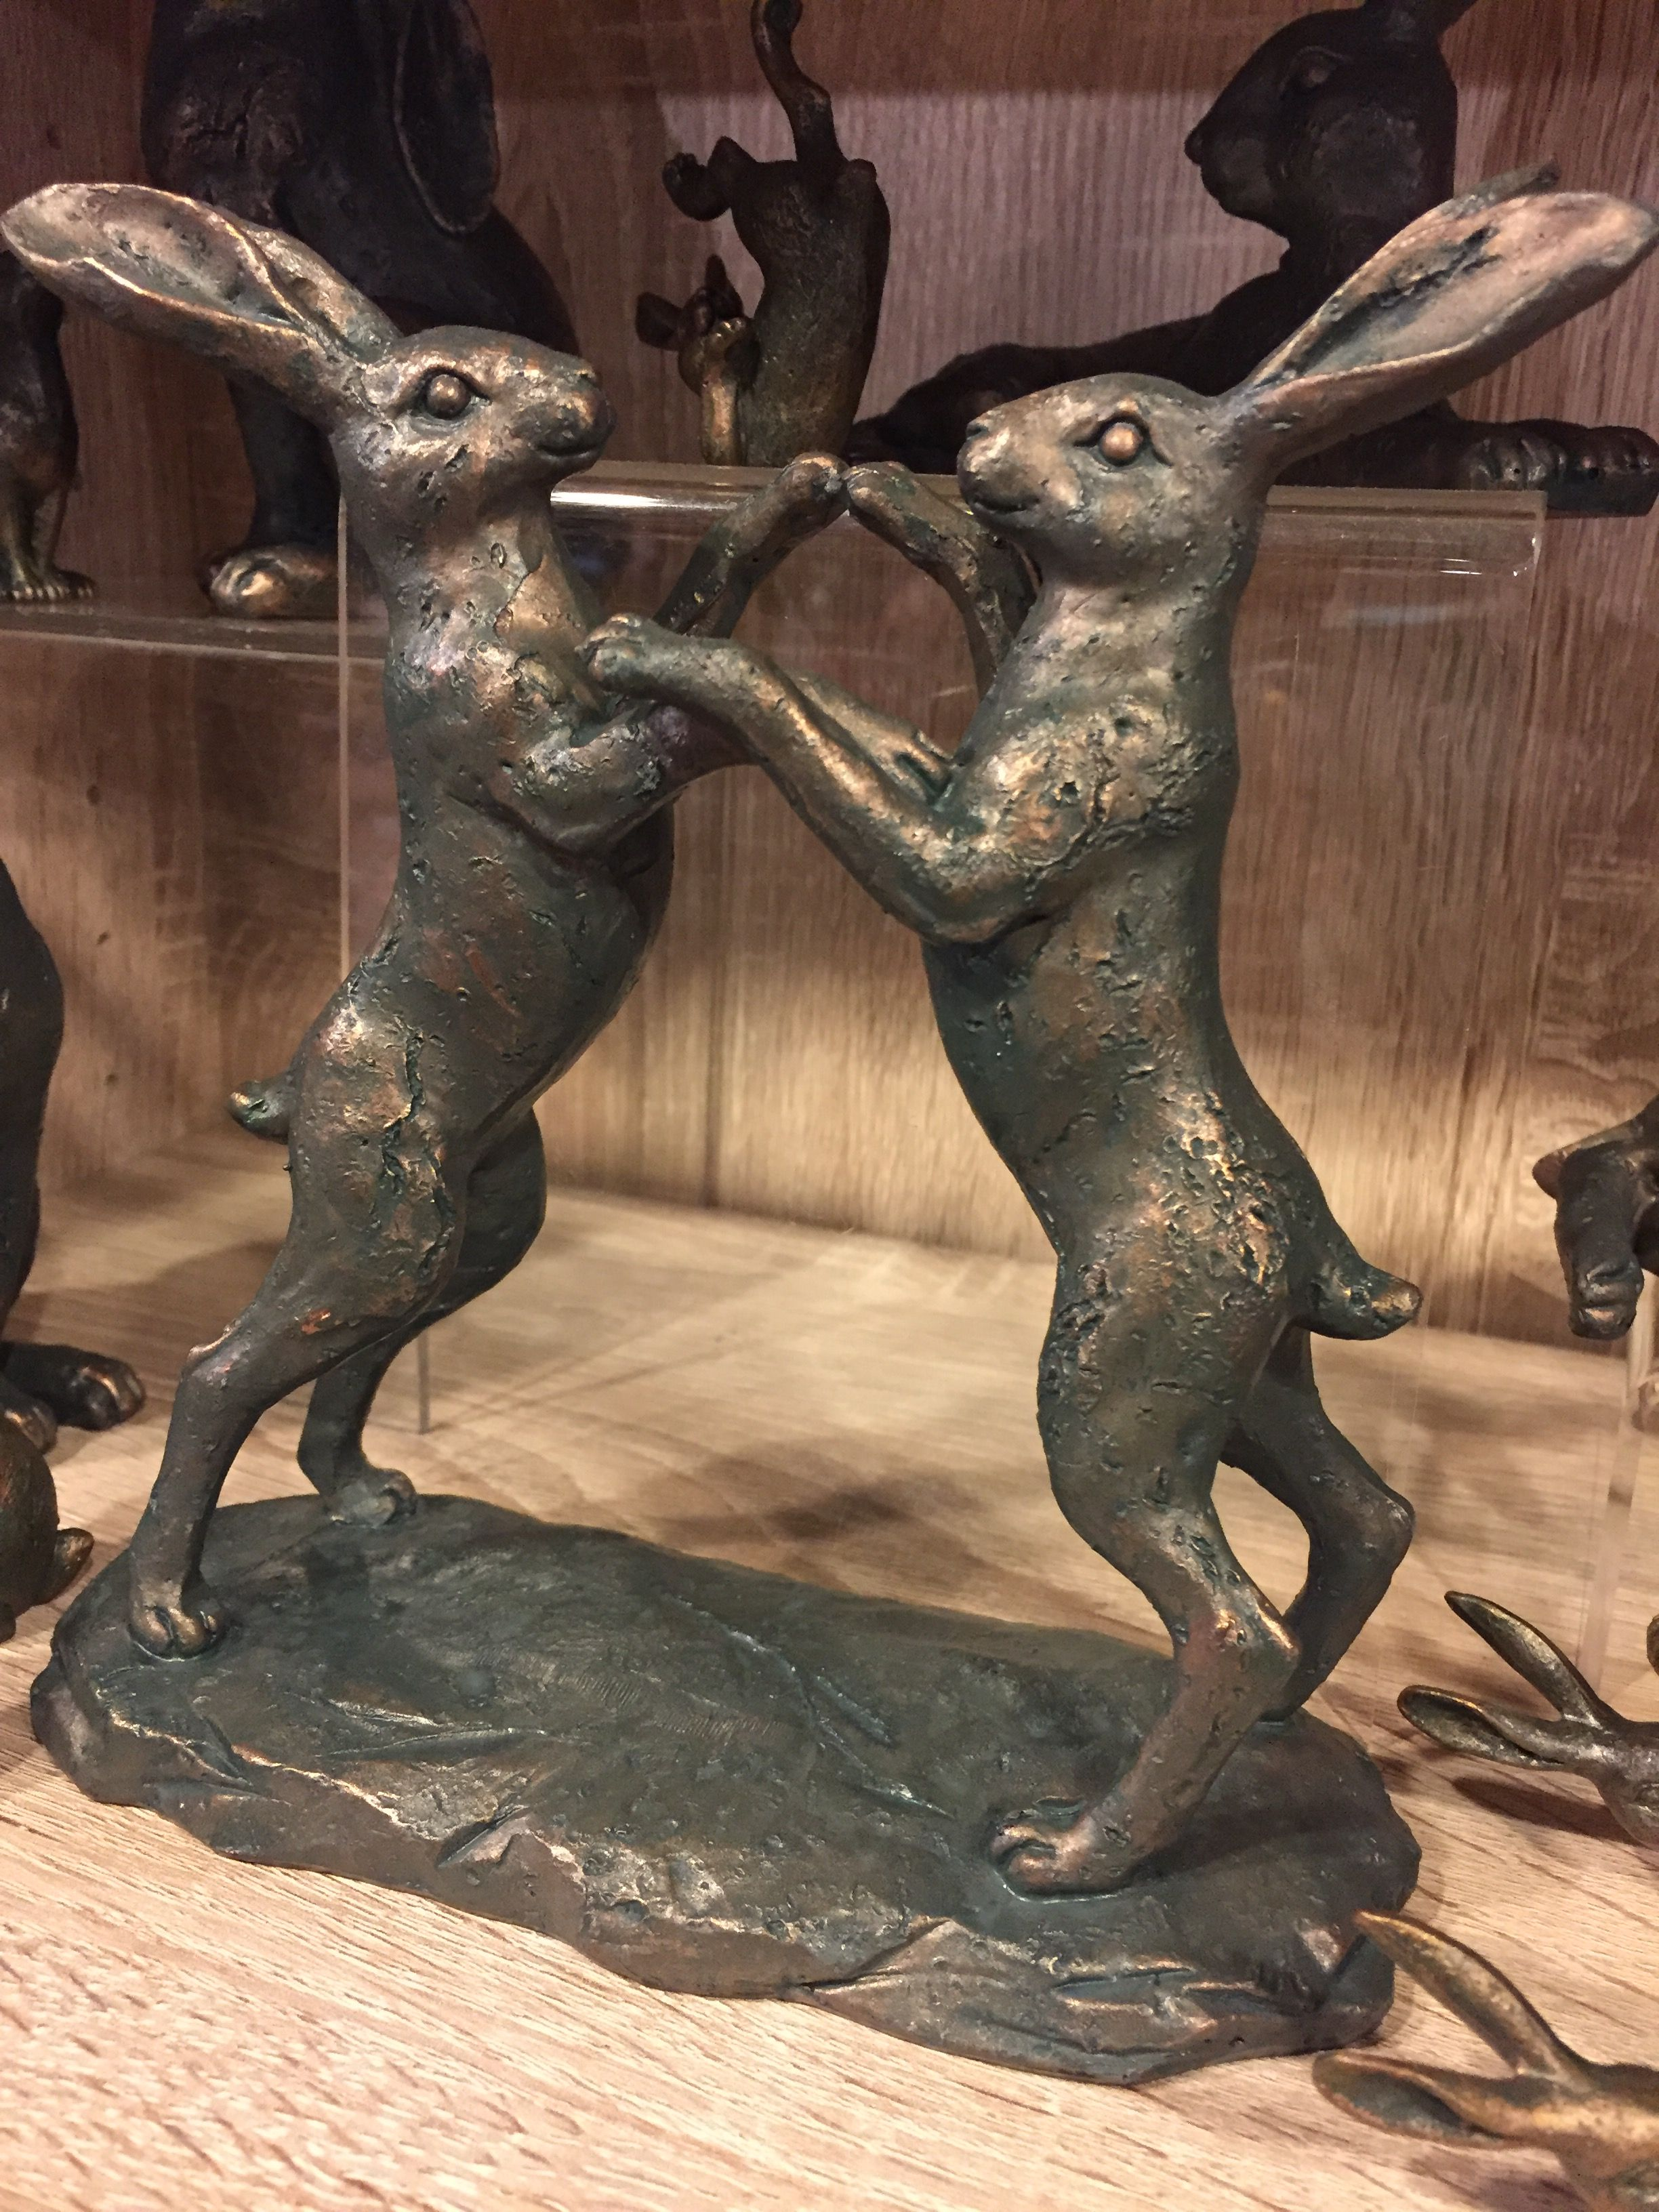 March hares Lion sculpture, Pet birds, Pottery animals